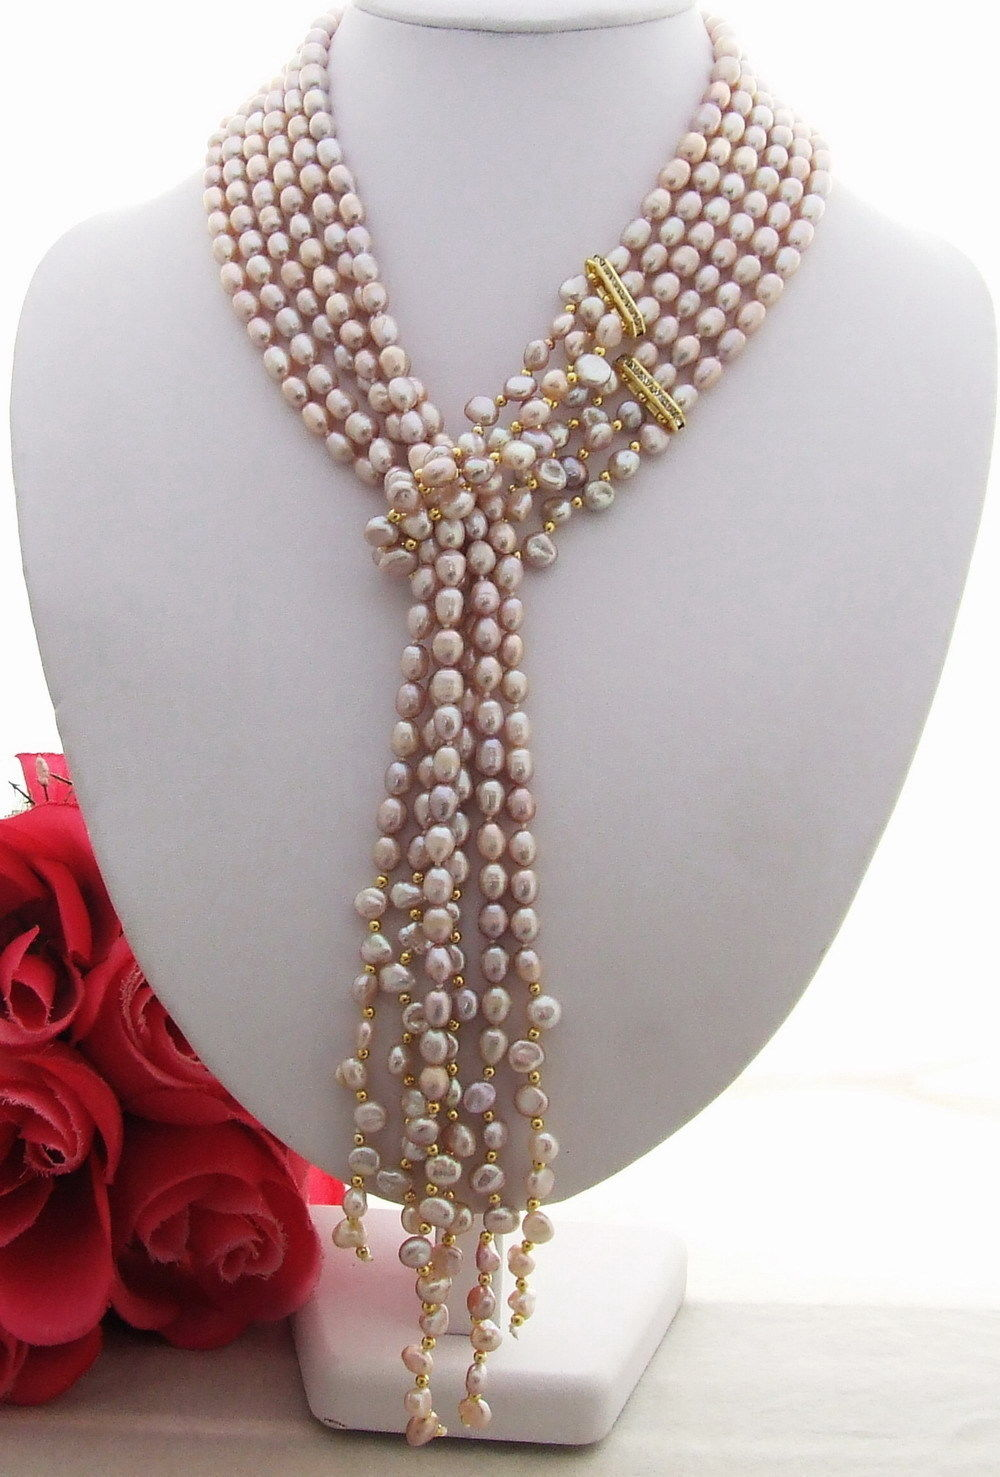 FREE SHIPPING>>>@@ > 08151 Excellent 50 Purple Pearl&keshi Pearl NecklaceFREE SHIPPING>>>@@ > 08151 Excellent 50 Purple Pearl&keshi Pearl Necklace